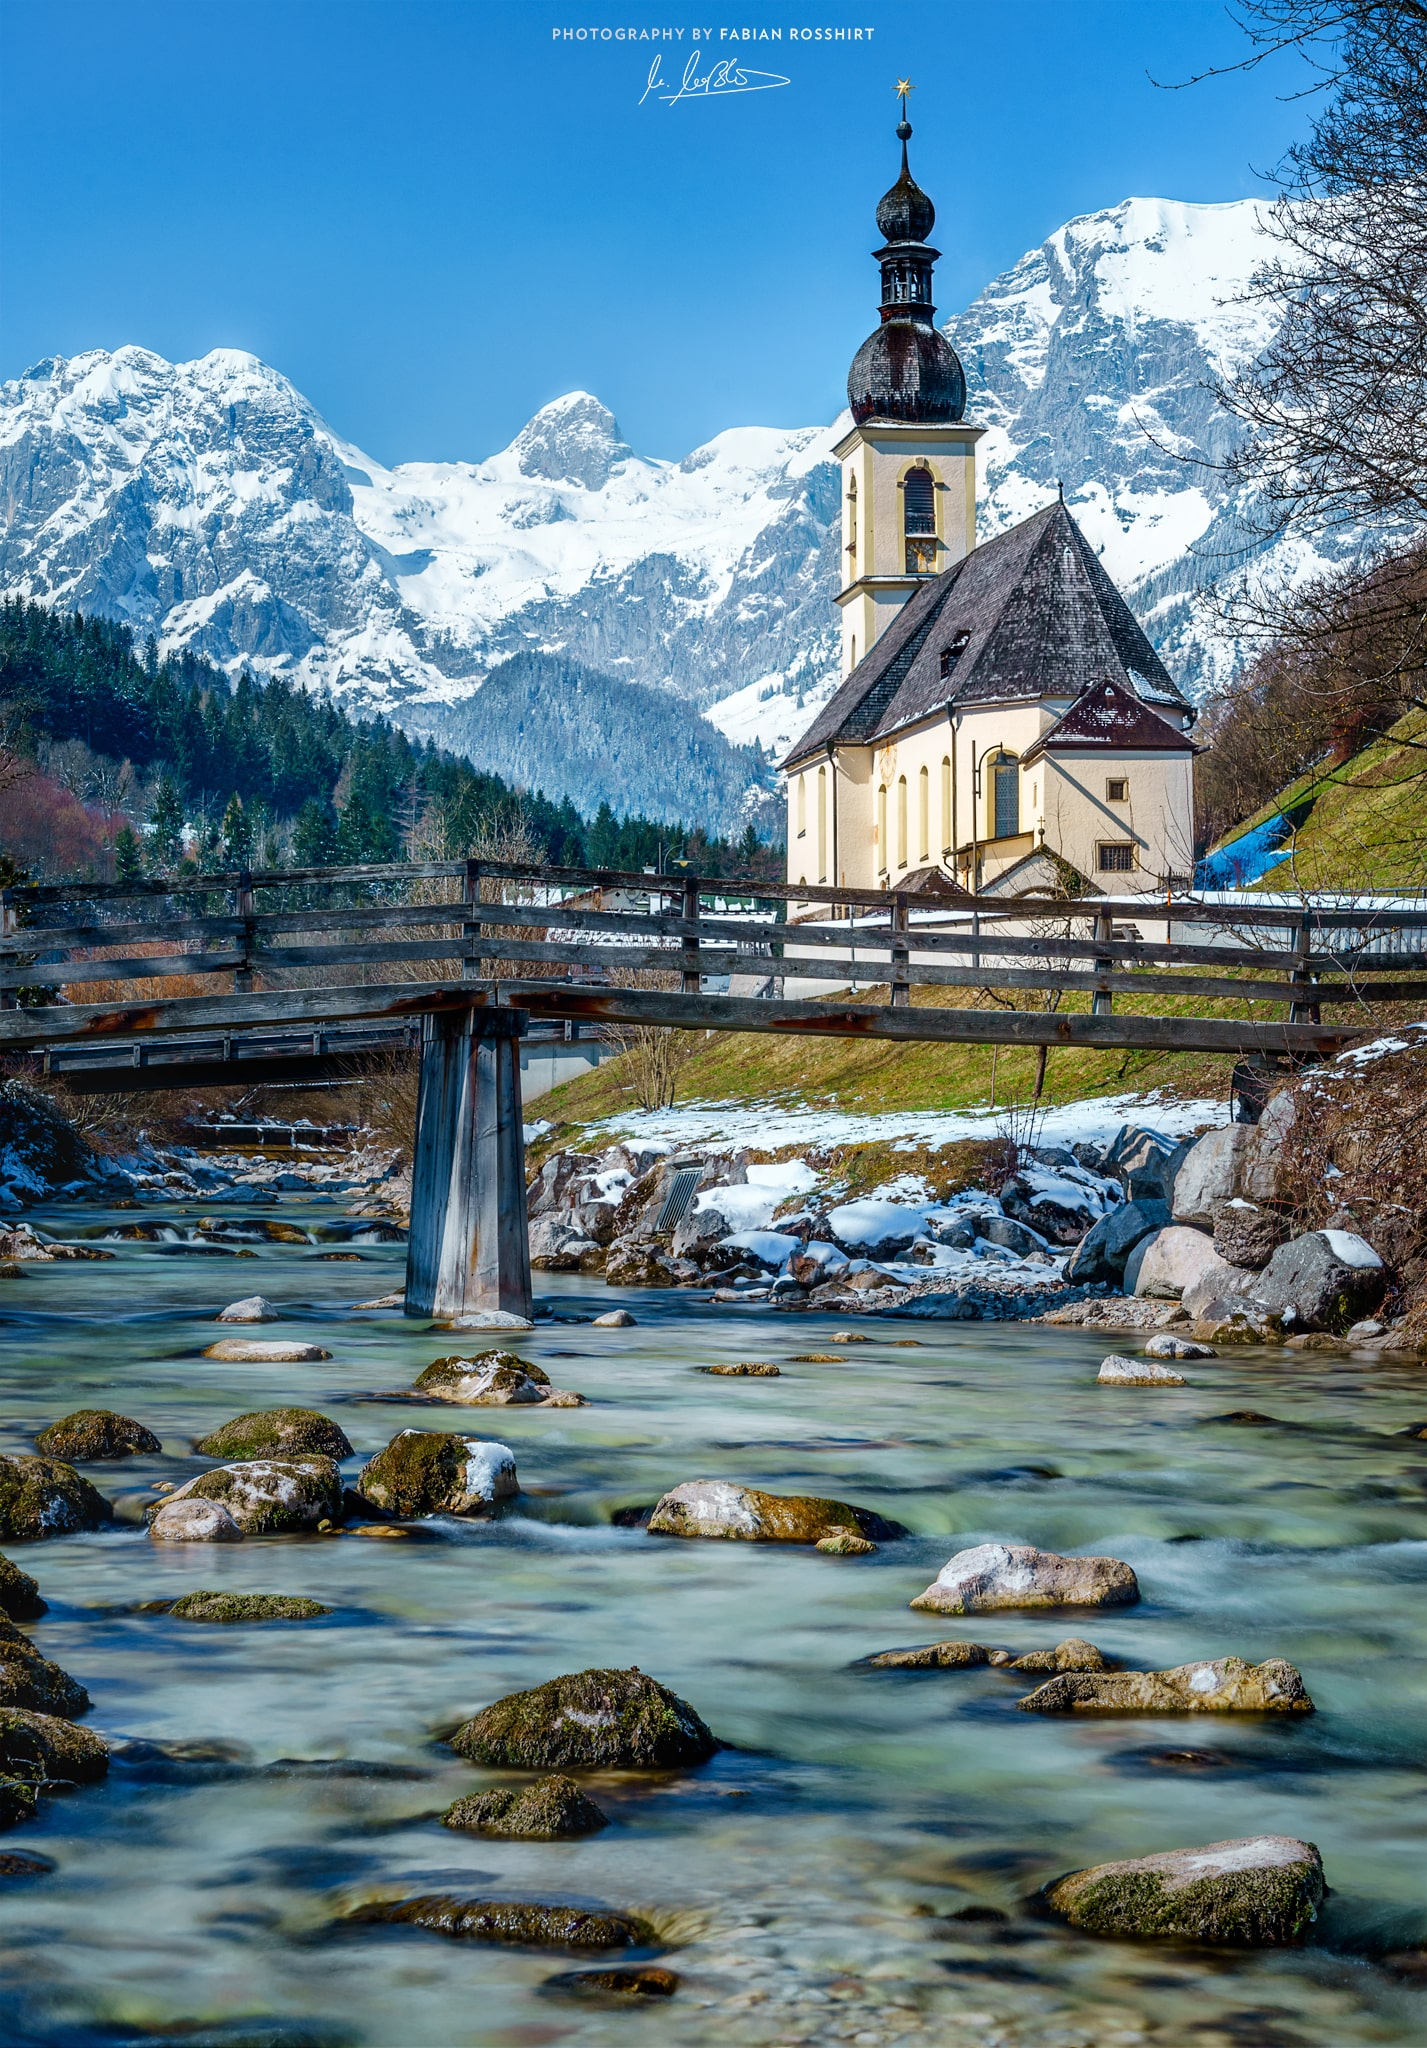 St. Sebastian, Ramsau, Berge, Wasser, Ache, Fluss, Sonne, Winter, River, Mountains, Kirche, Church, IMPRESSIVE (Berchtesgaden Wallpaper HD Bilder Hintergrundbild Background)